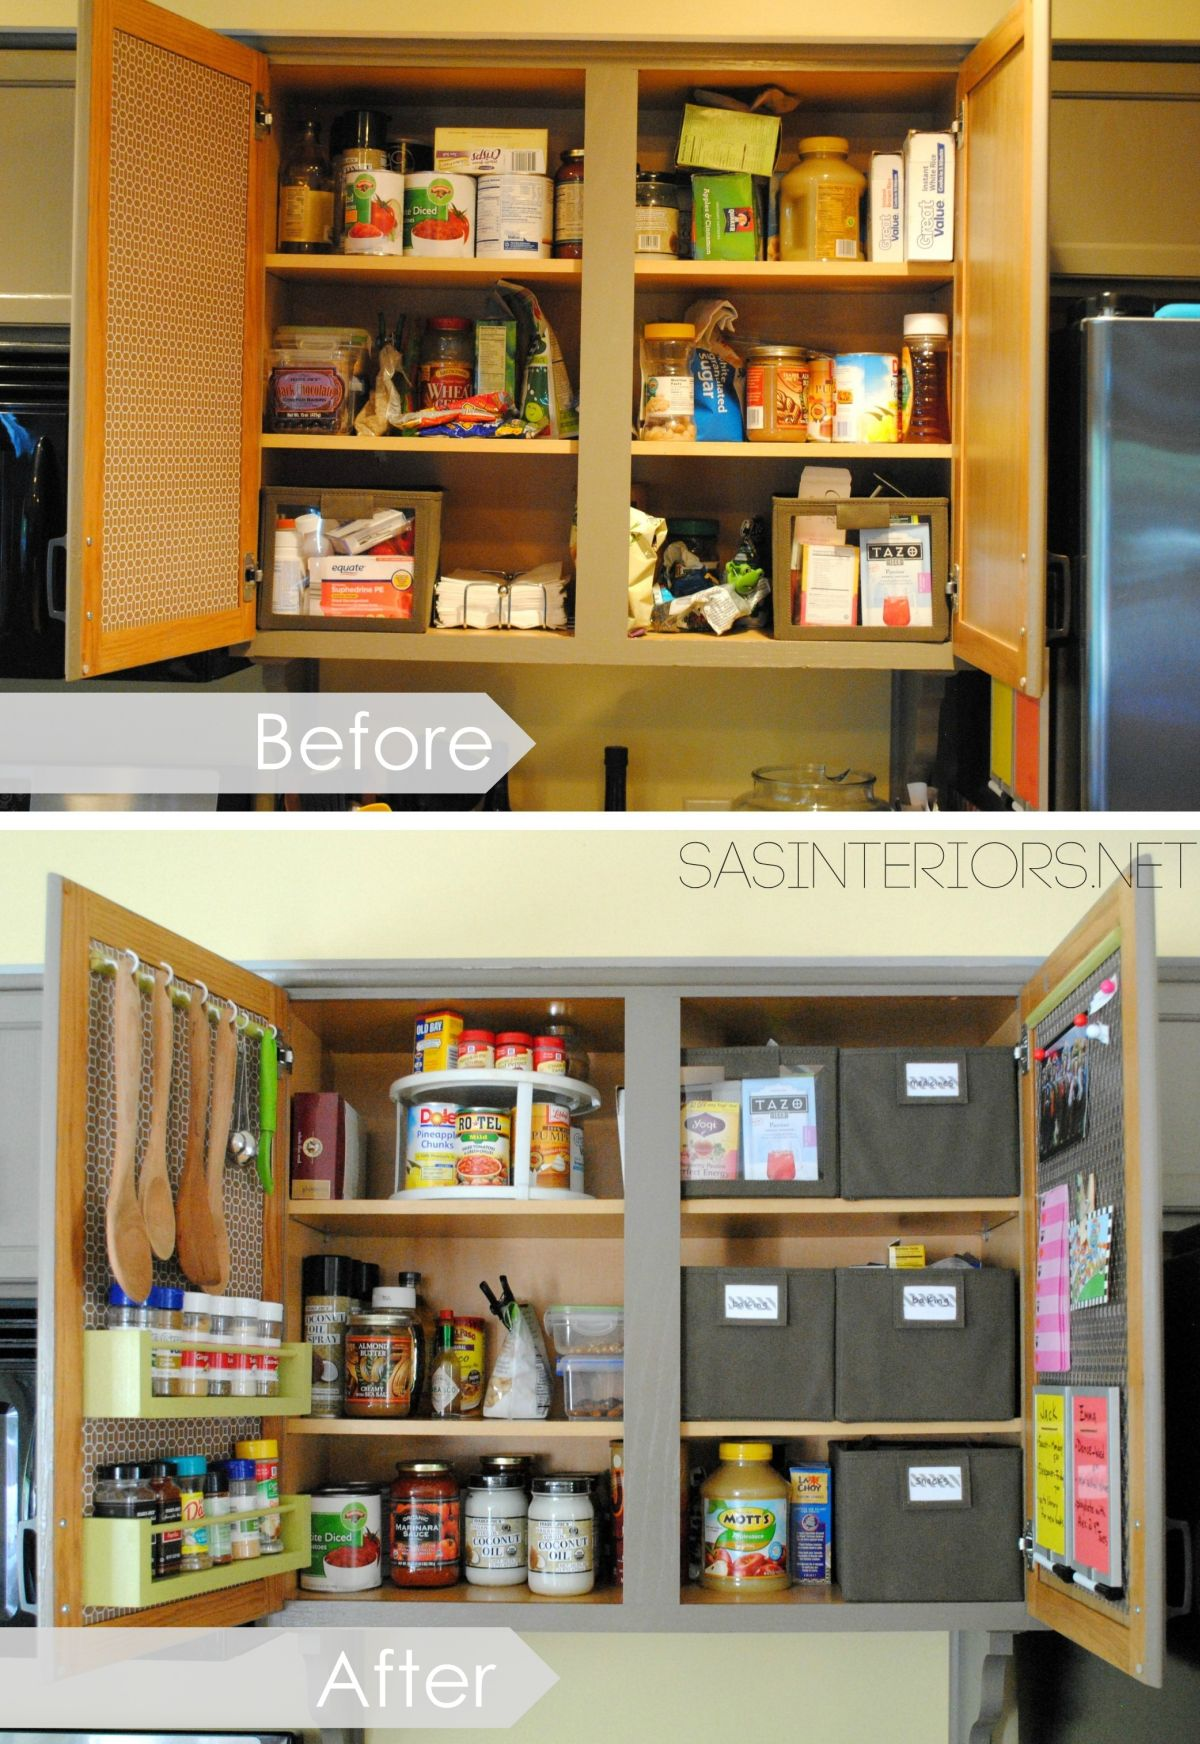 kitchen organization ideas small spaces kitchen cabinets smart ways to organize small kitchen 10 clever tips